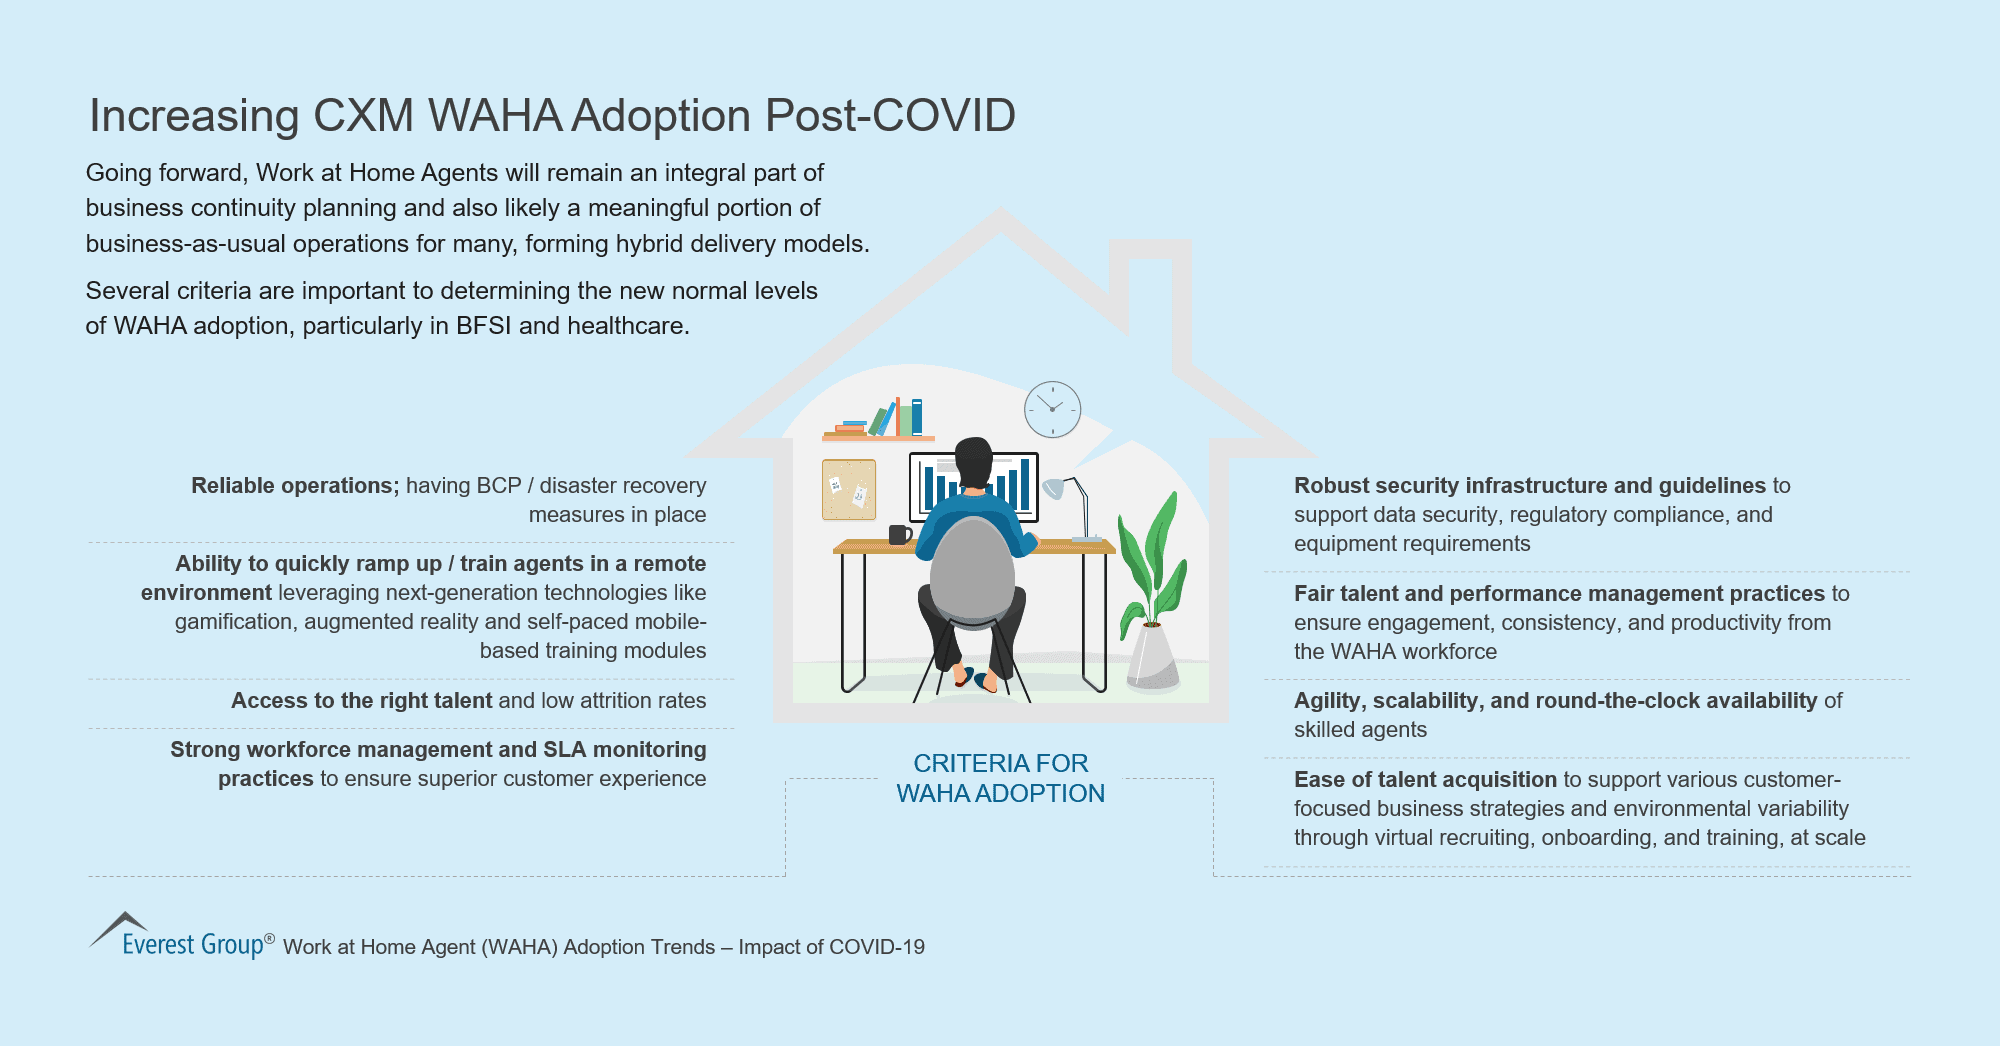 Increasing CXM WAHA Adoption Post-COVID